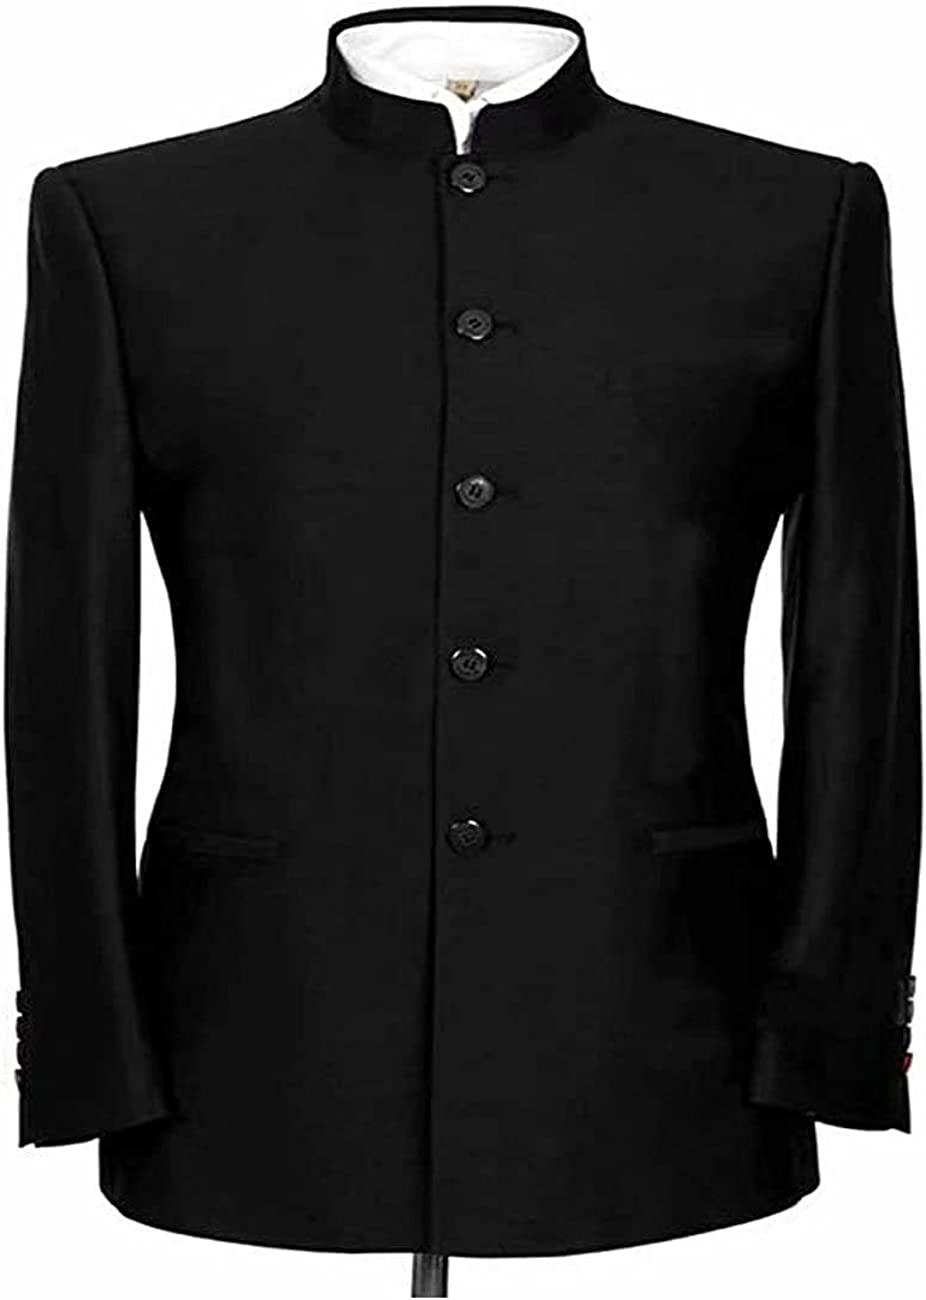 2 Pcs Men's Chinese Tunic Suit,One Stand Collar Slim Fit Blazer with One Pant for Weddings and Daily Life